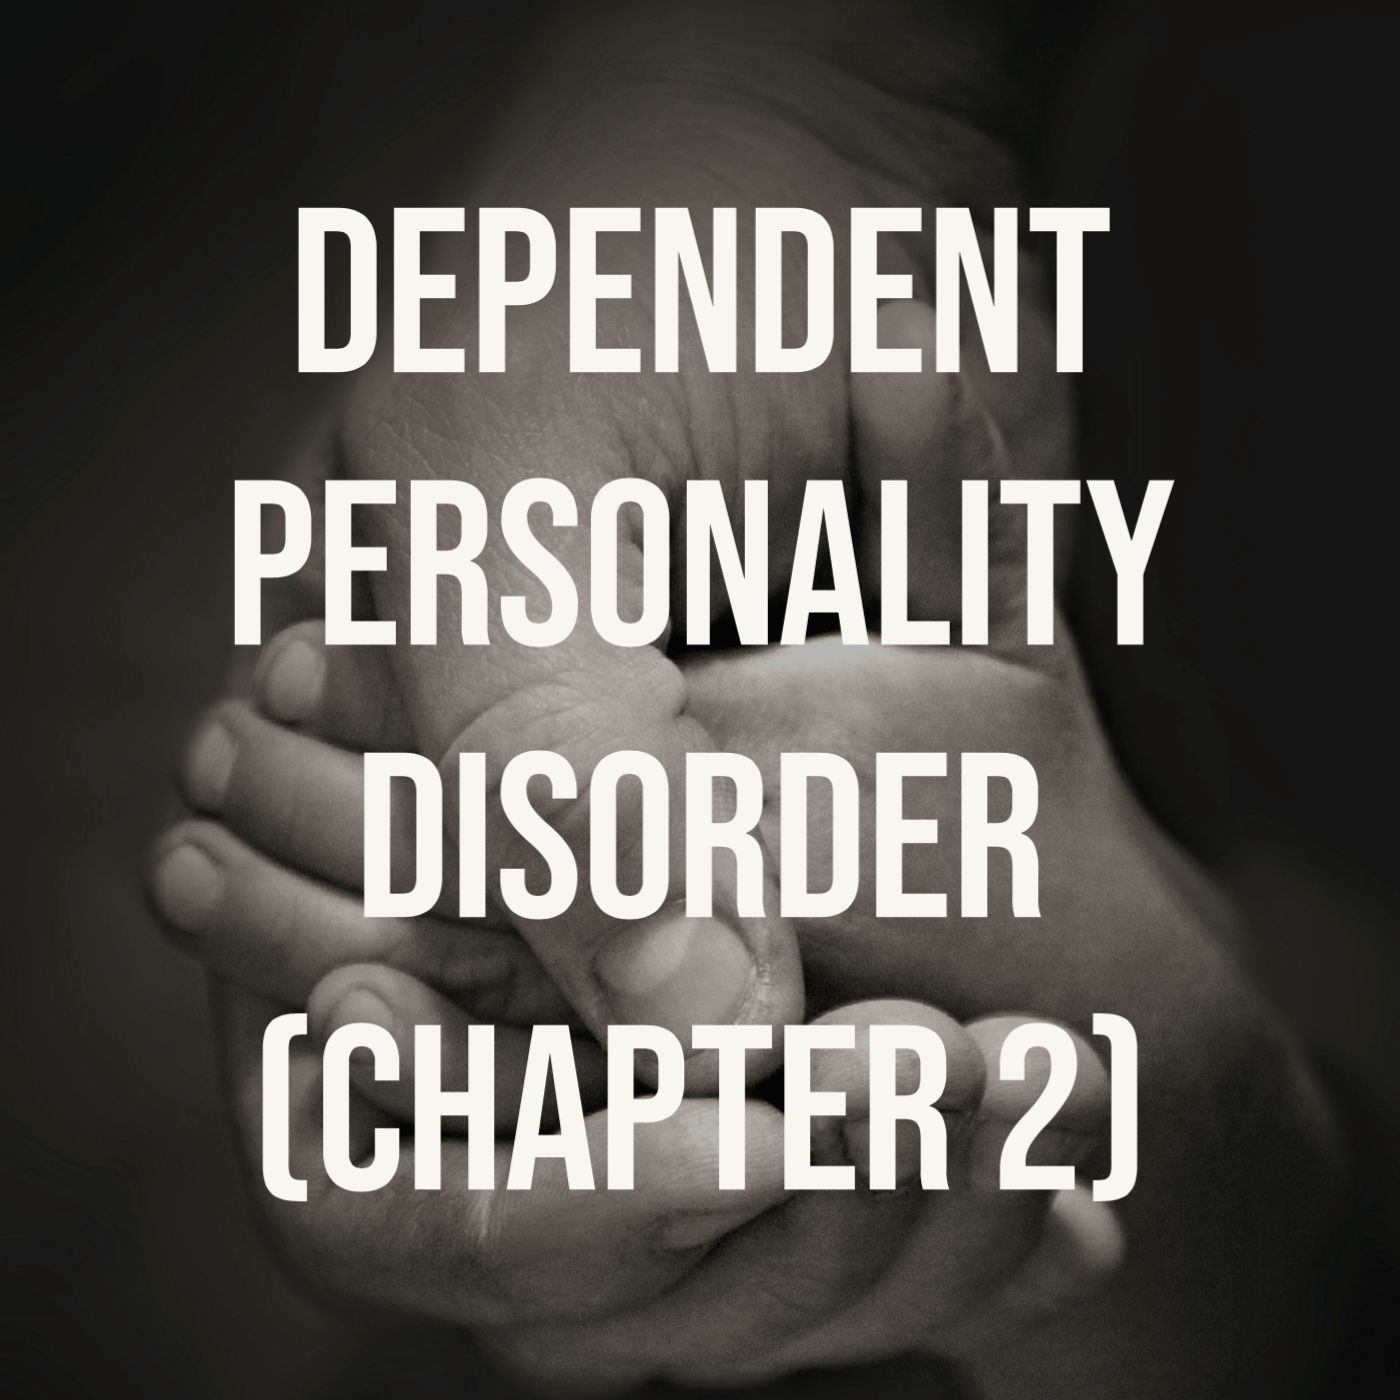 Dependent Personality Disorder - (Chapter 2)